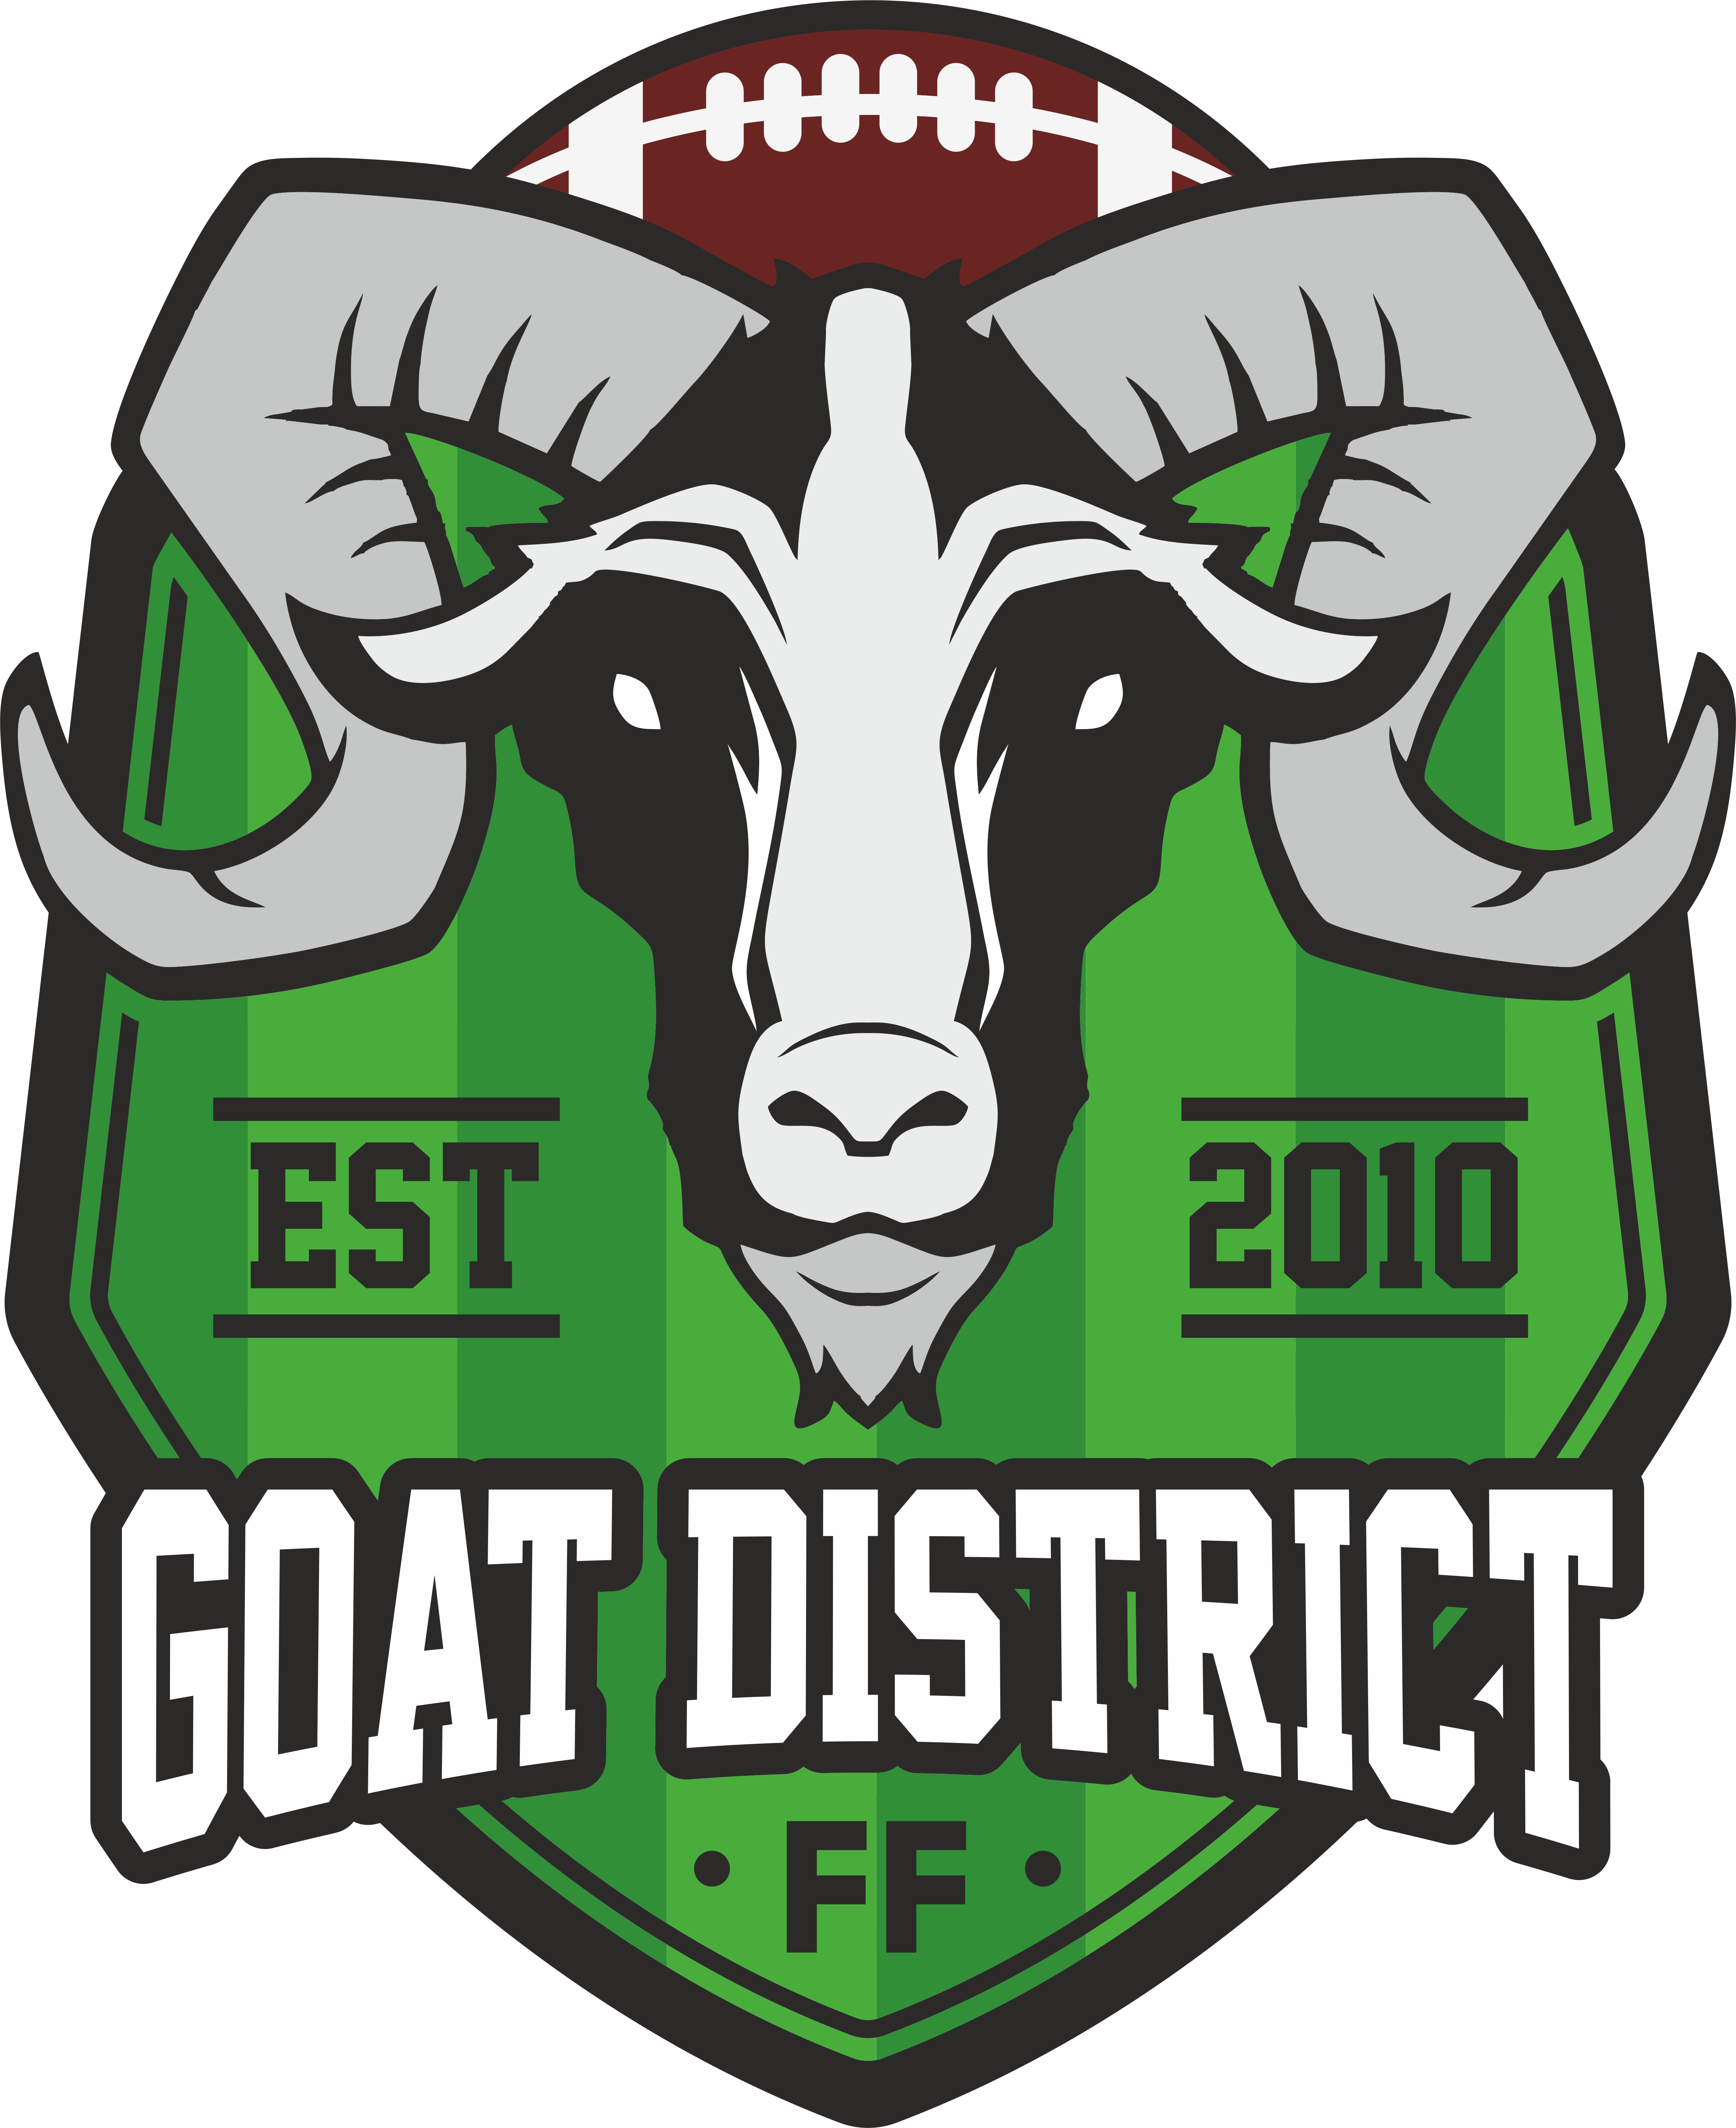 Fantasy football clipart svg transparent The GOAT District - Passionate about Fantasy Football. Focused on ... svg transparent